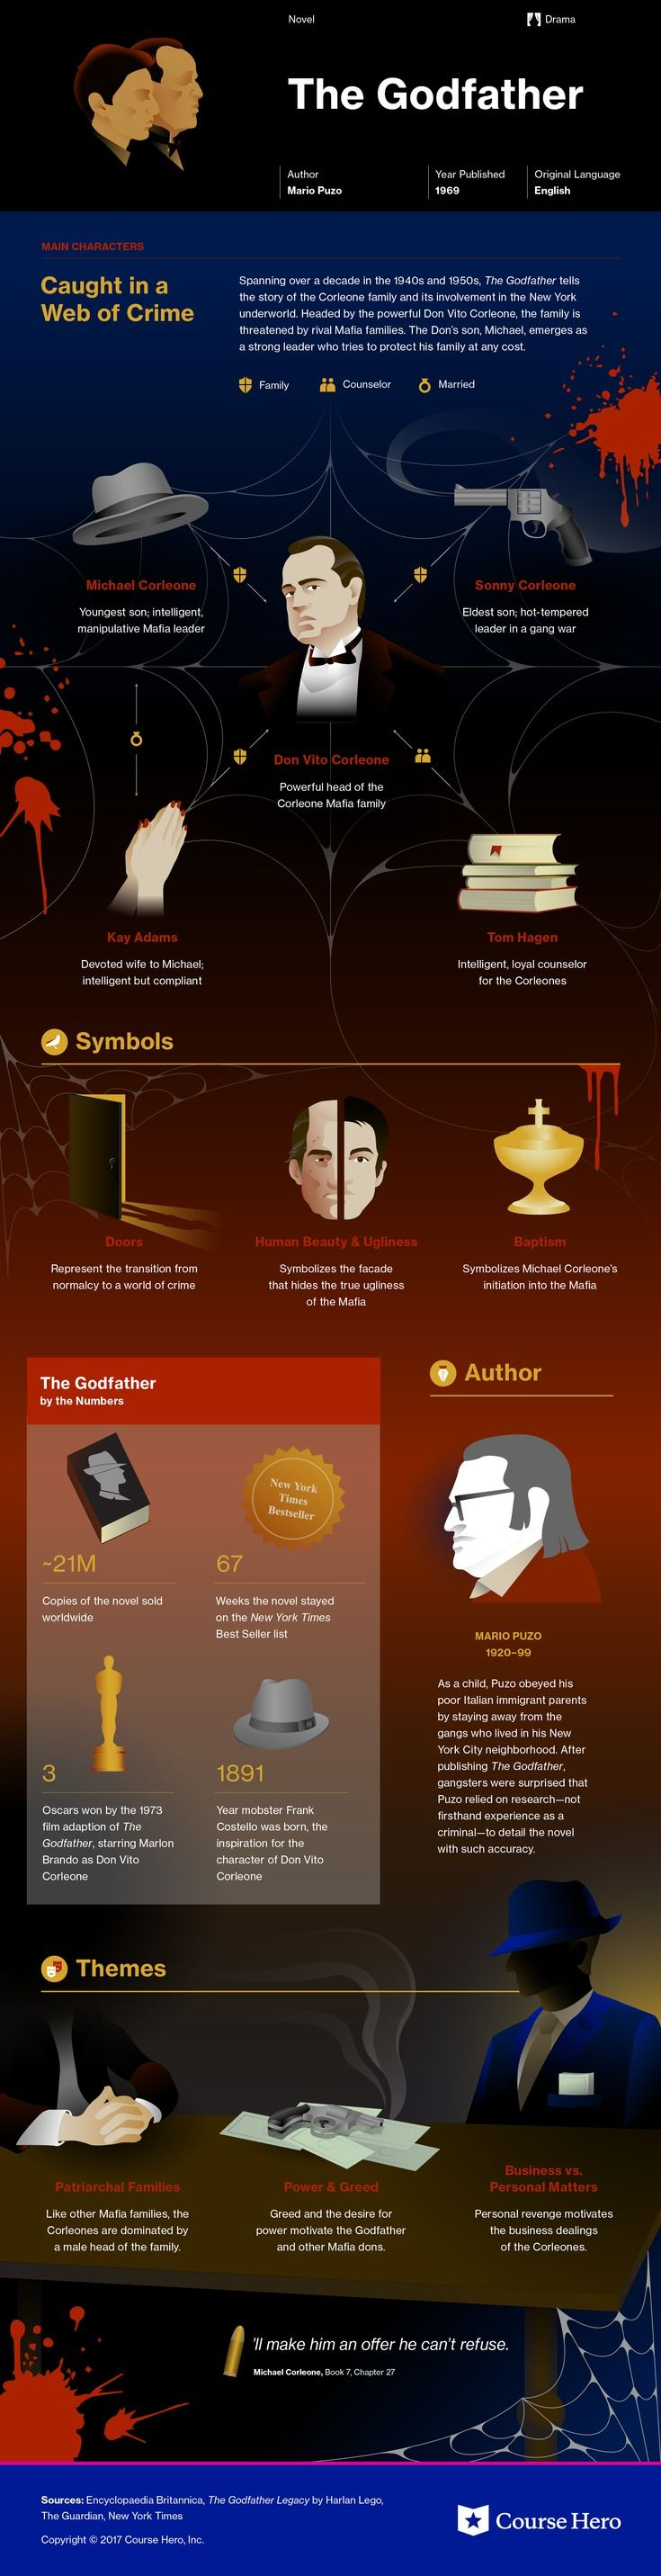 This @CourseHero infographic on The Godfather is both visually stunning and informative!